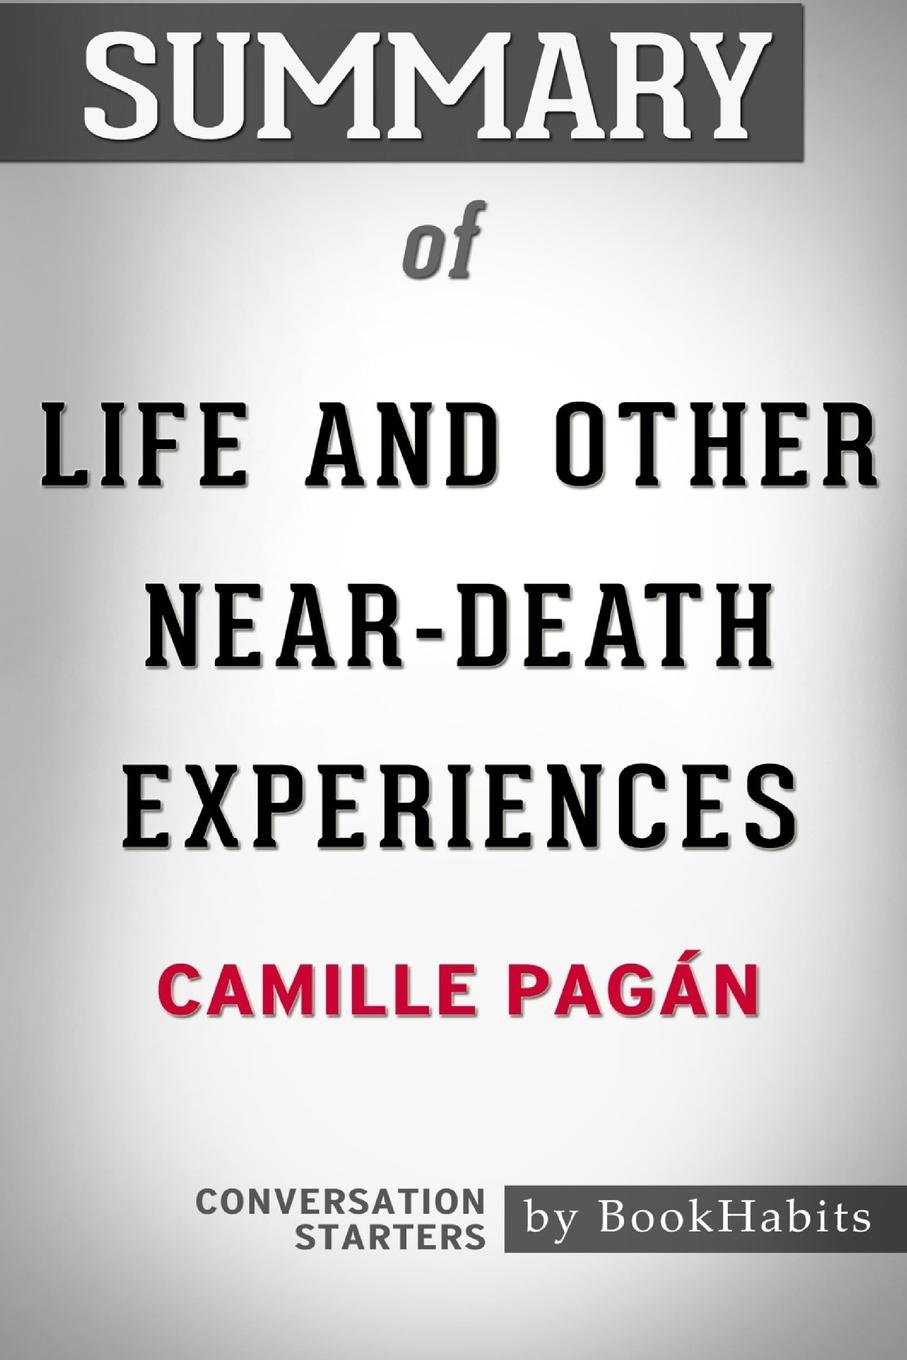 лучшая цена BookHabits Summary of Life and Other Near-Death Experiences by Camille Pagan. Conversation Starters